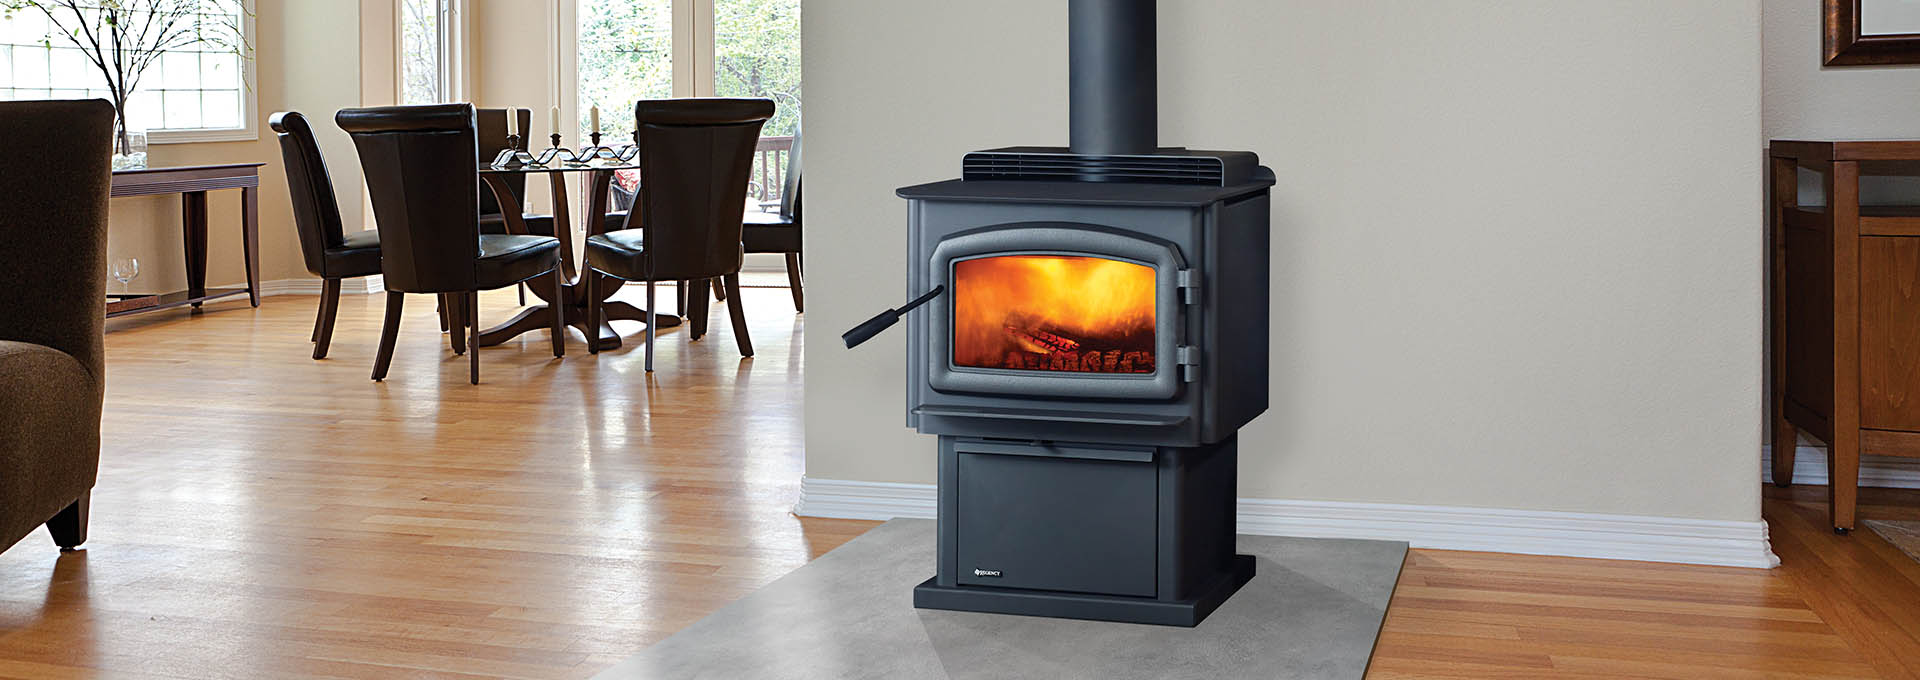 Annual Cost of Operating a Wood Burning Stove